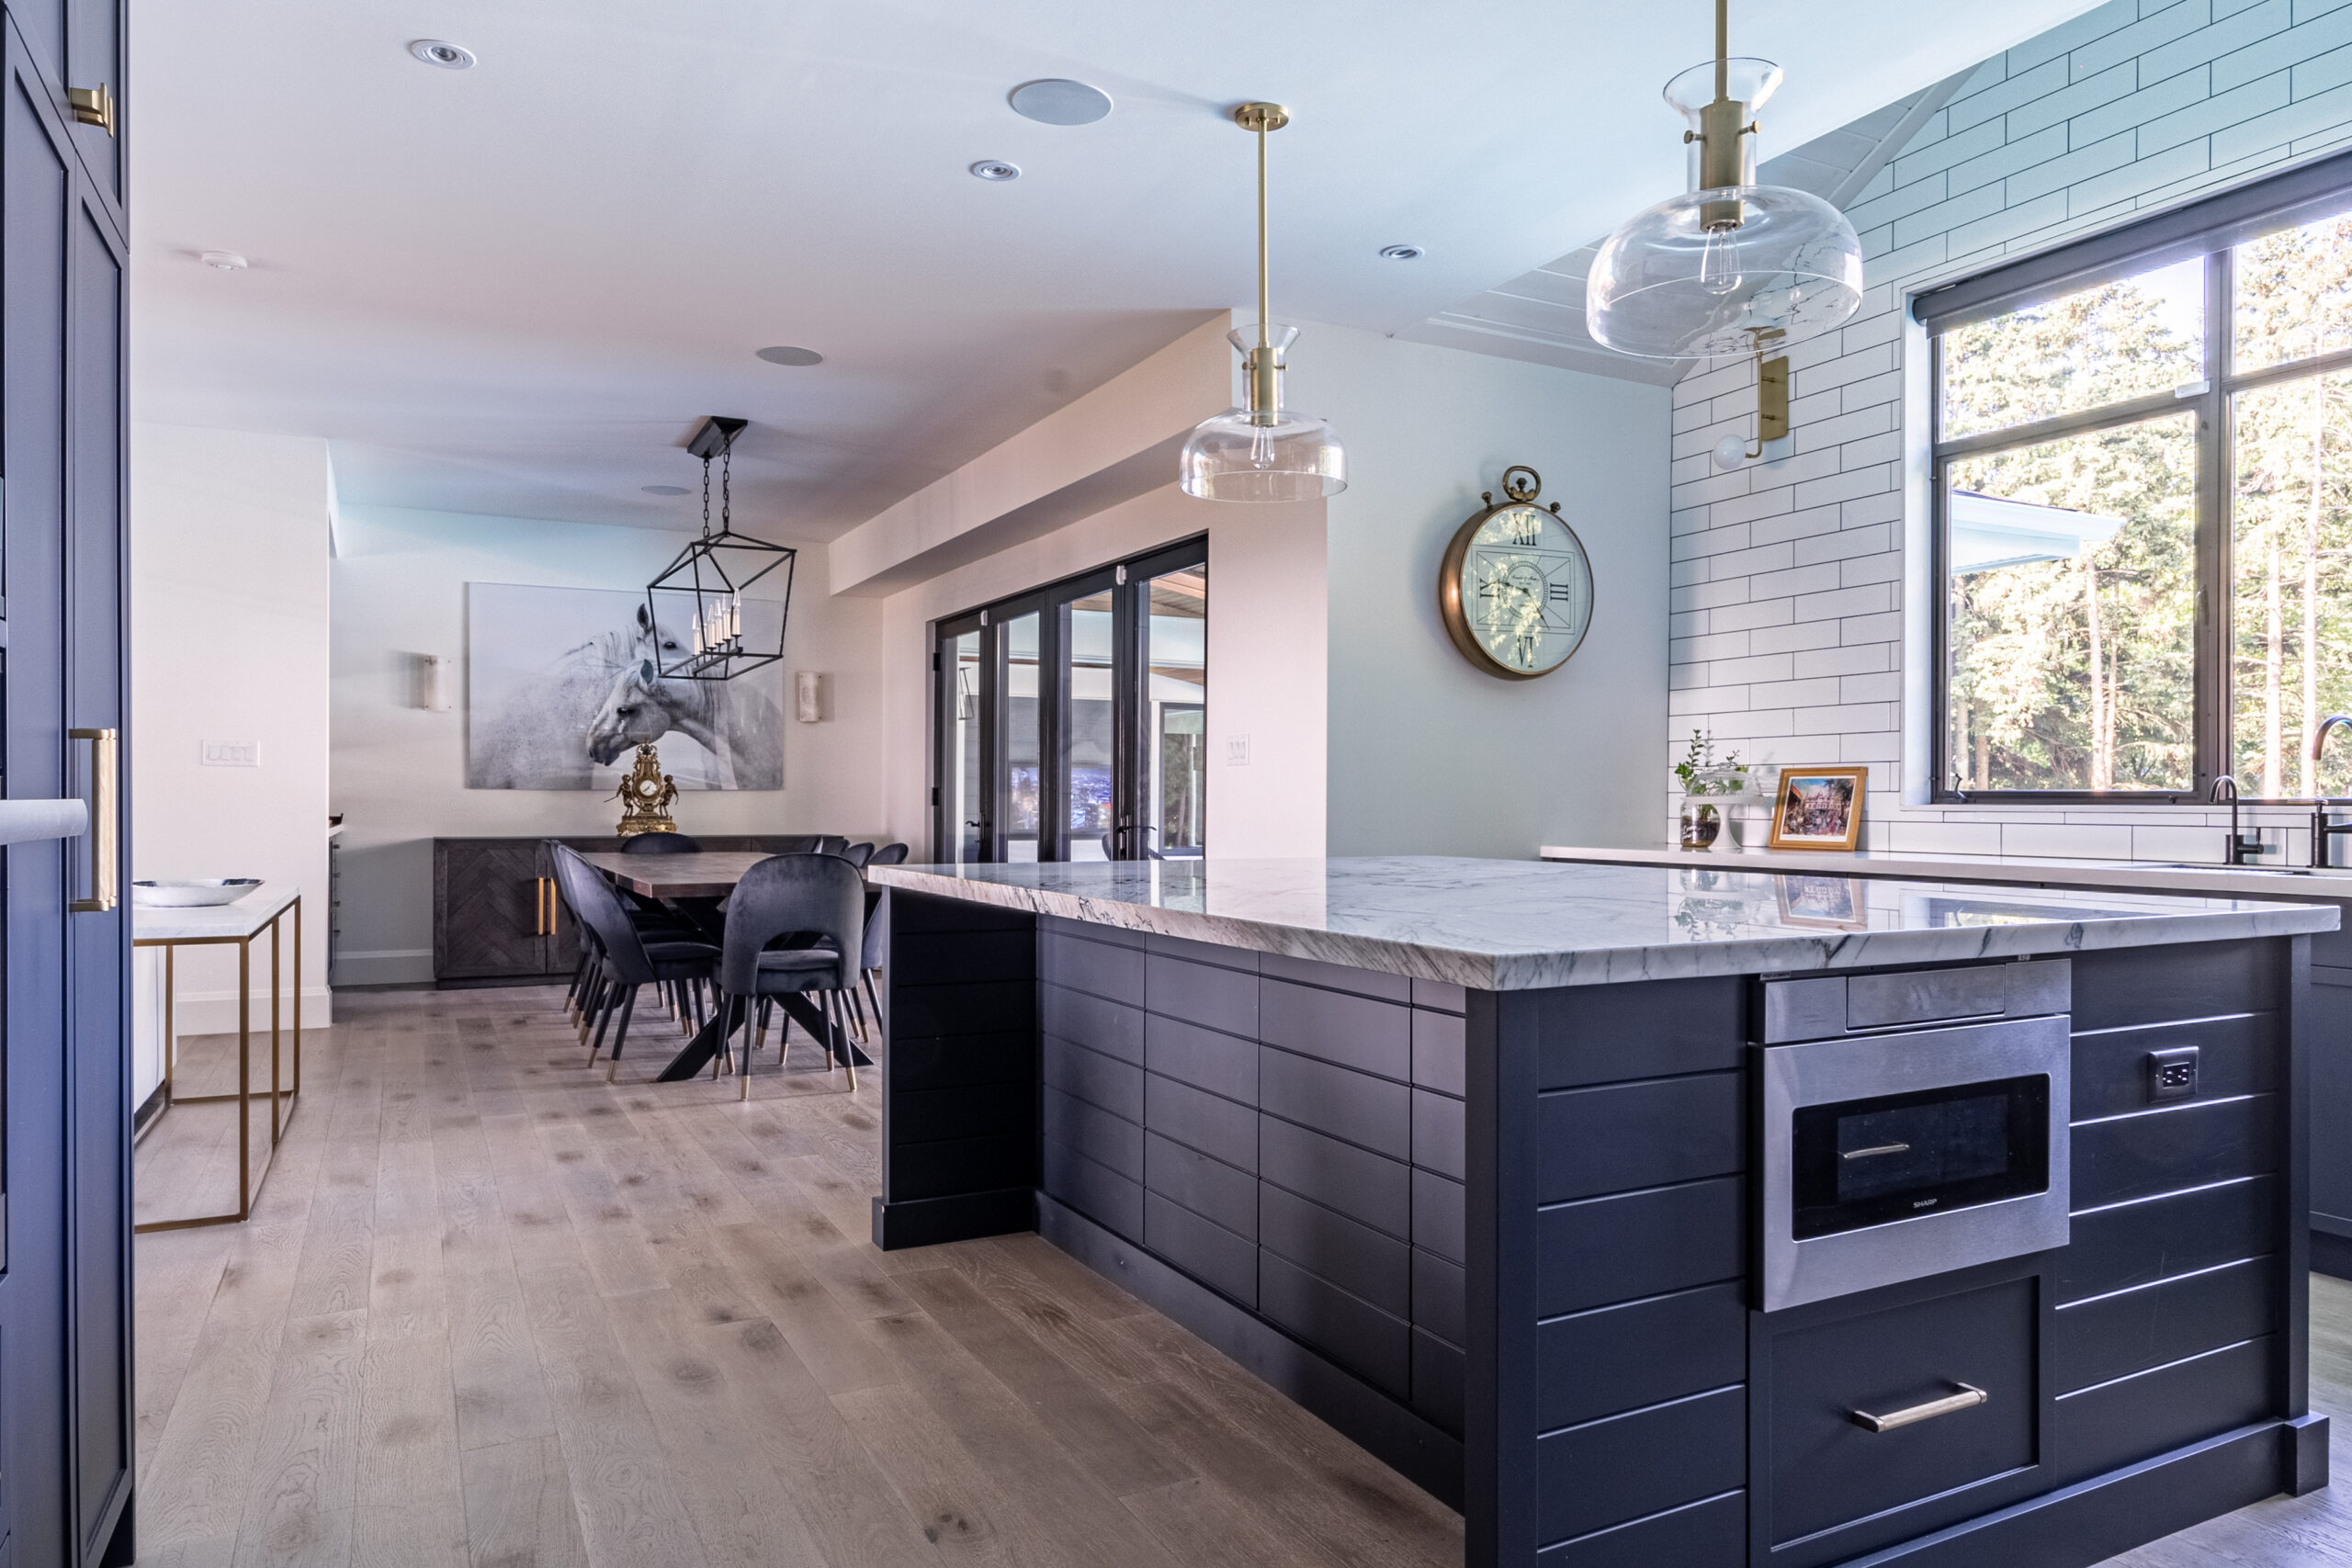 Kitchen with automated lighting control